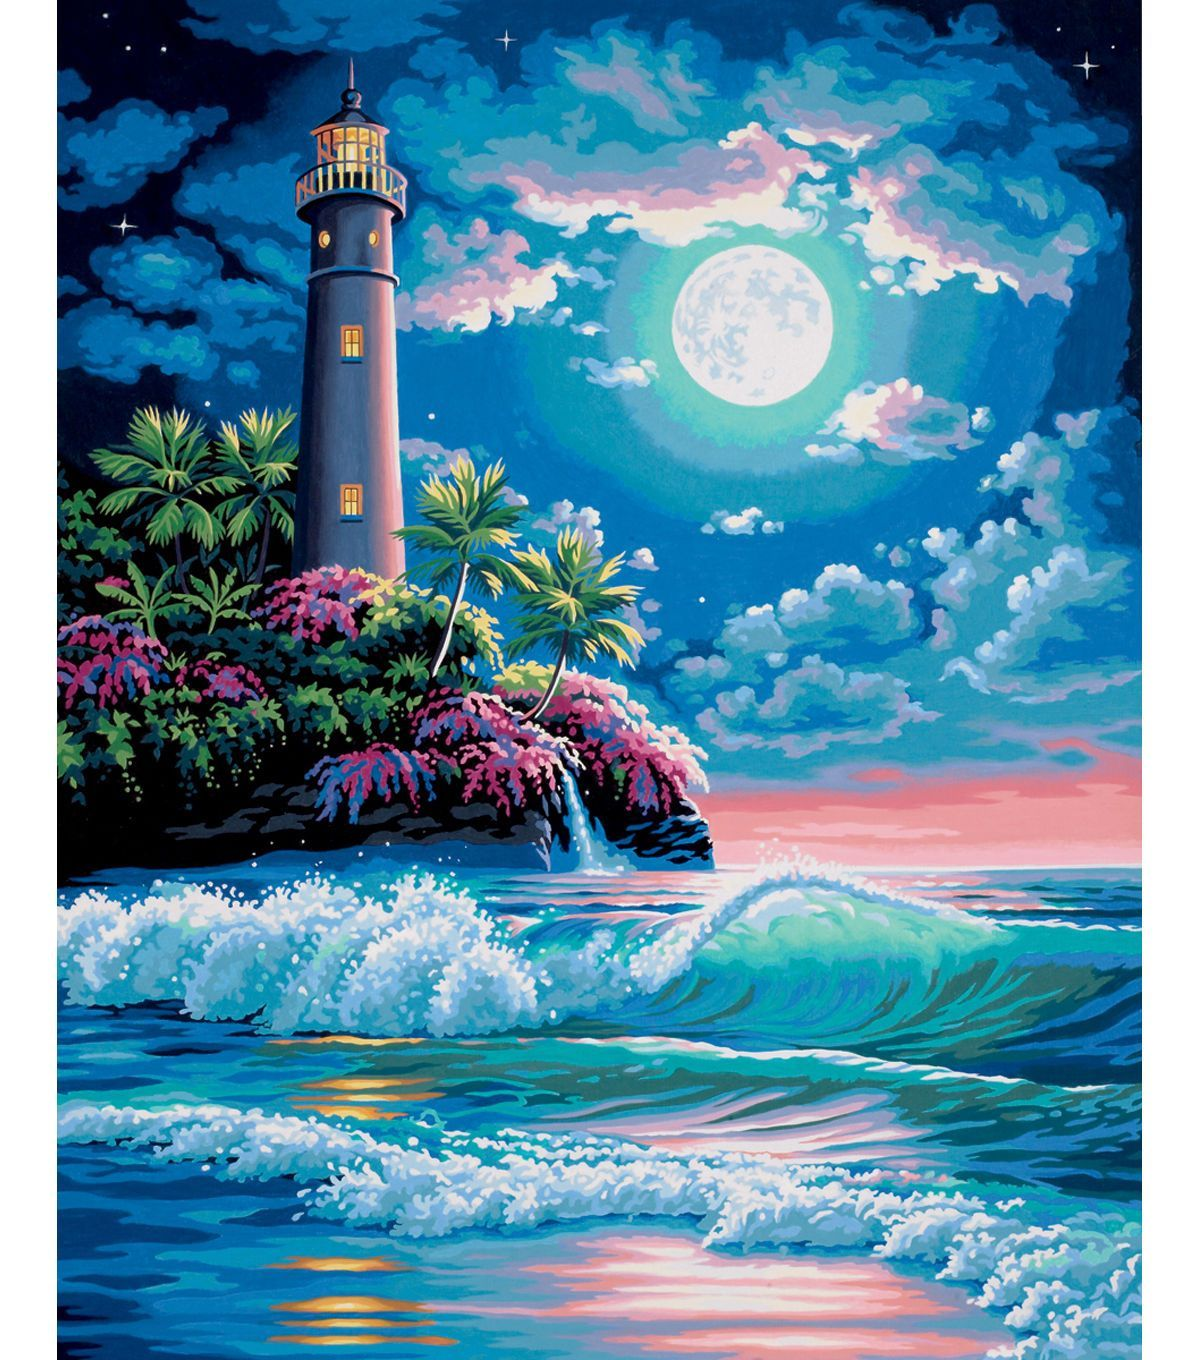 16 X 20 in your choice of designs Dimensions Paint By Number Kit